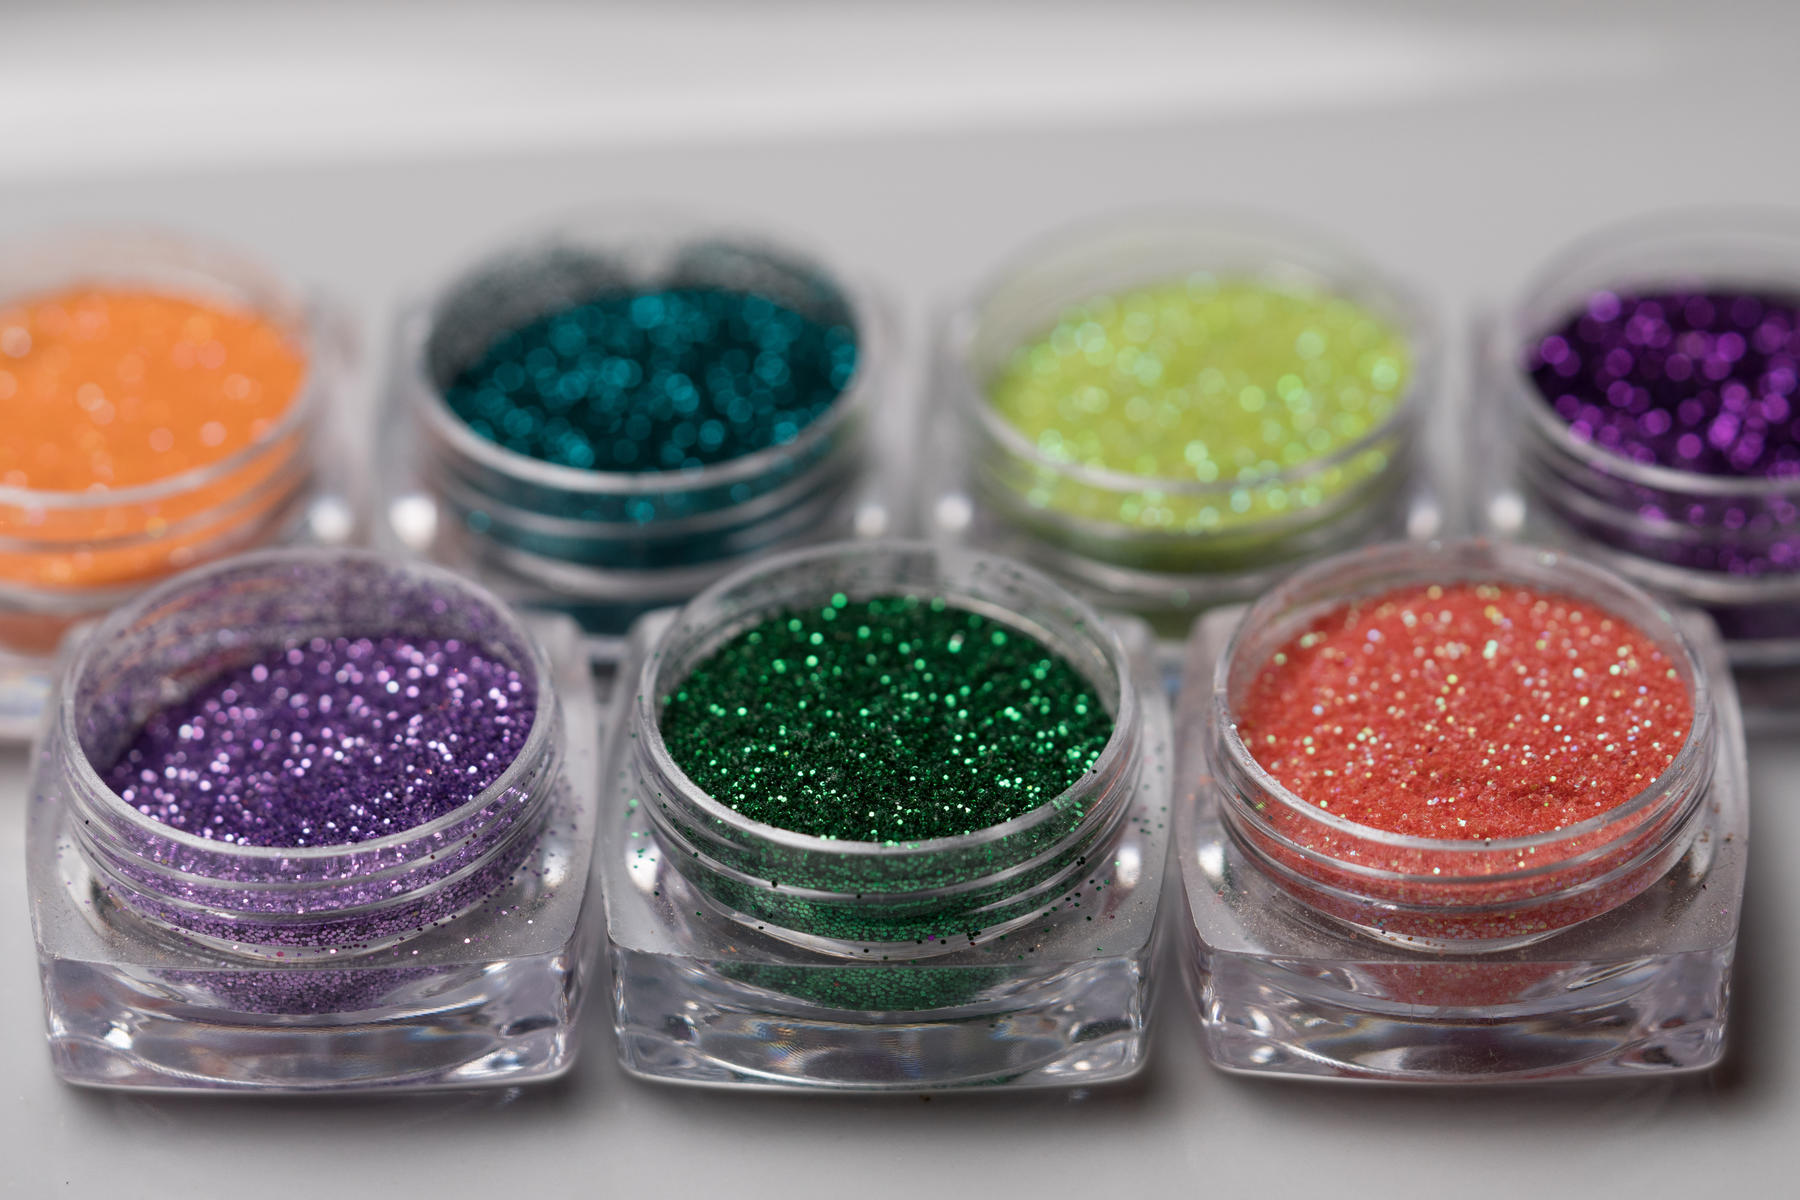 Scientist Warn Of The Harmful Impacts Of Glitter